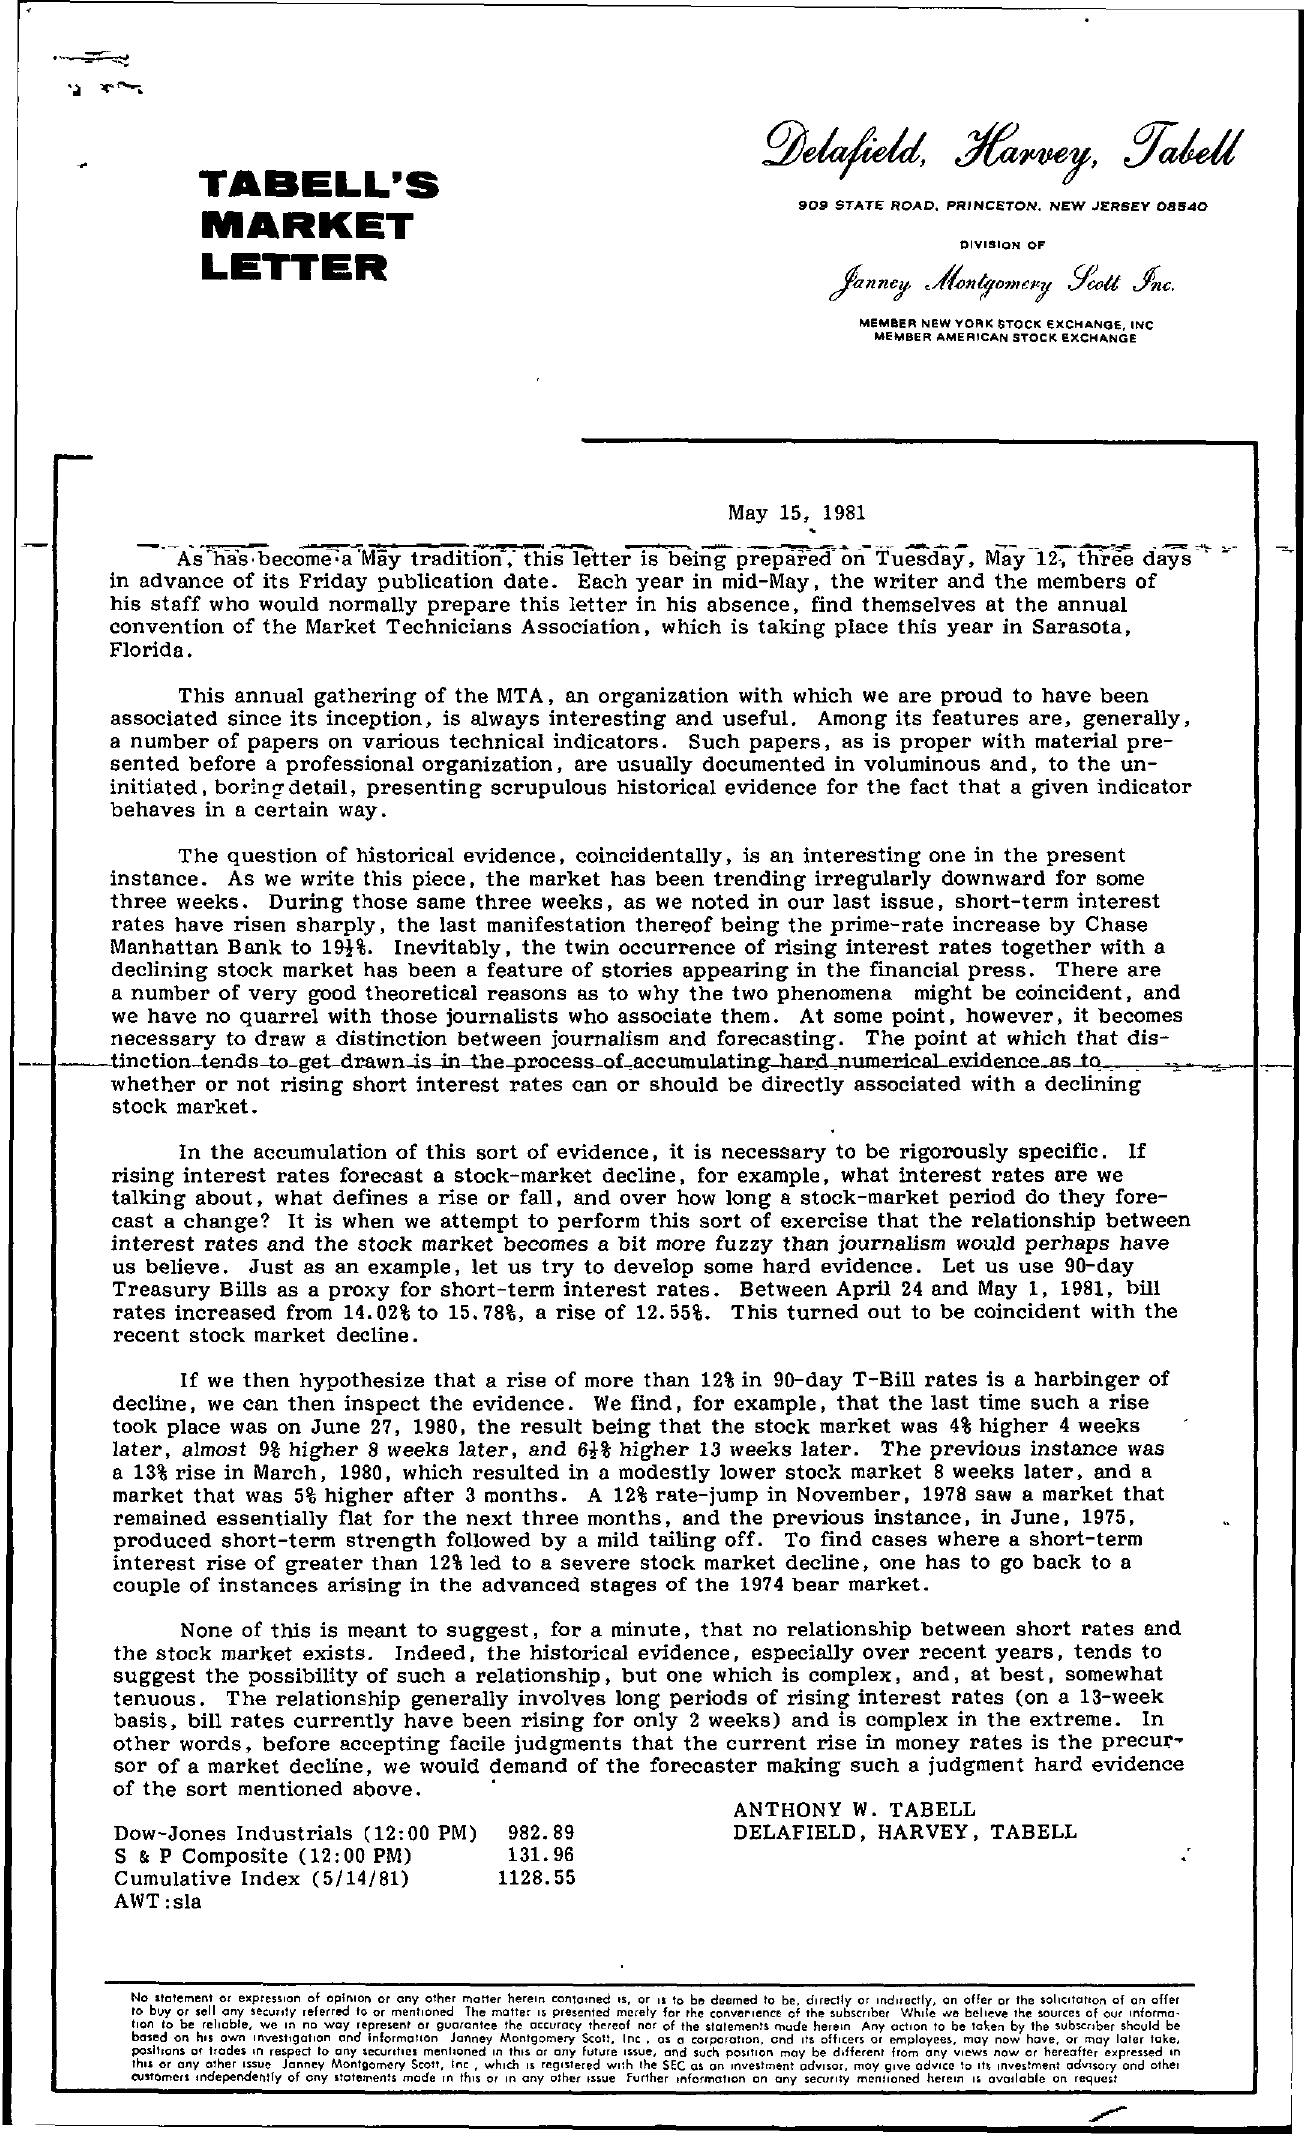 Tabell's Market Letter - May 15, 1981